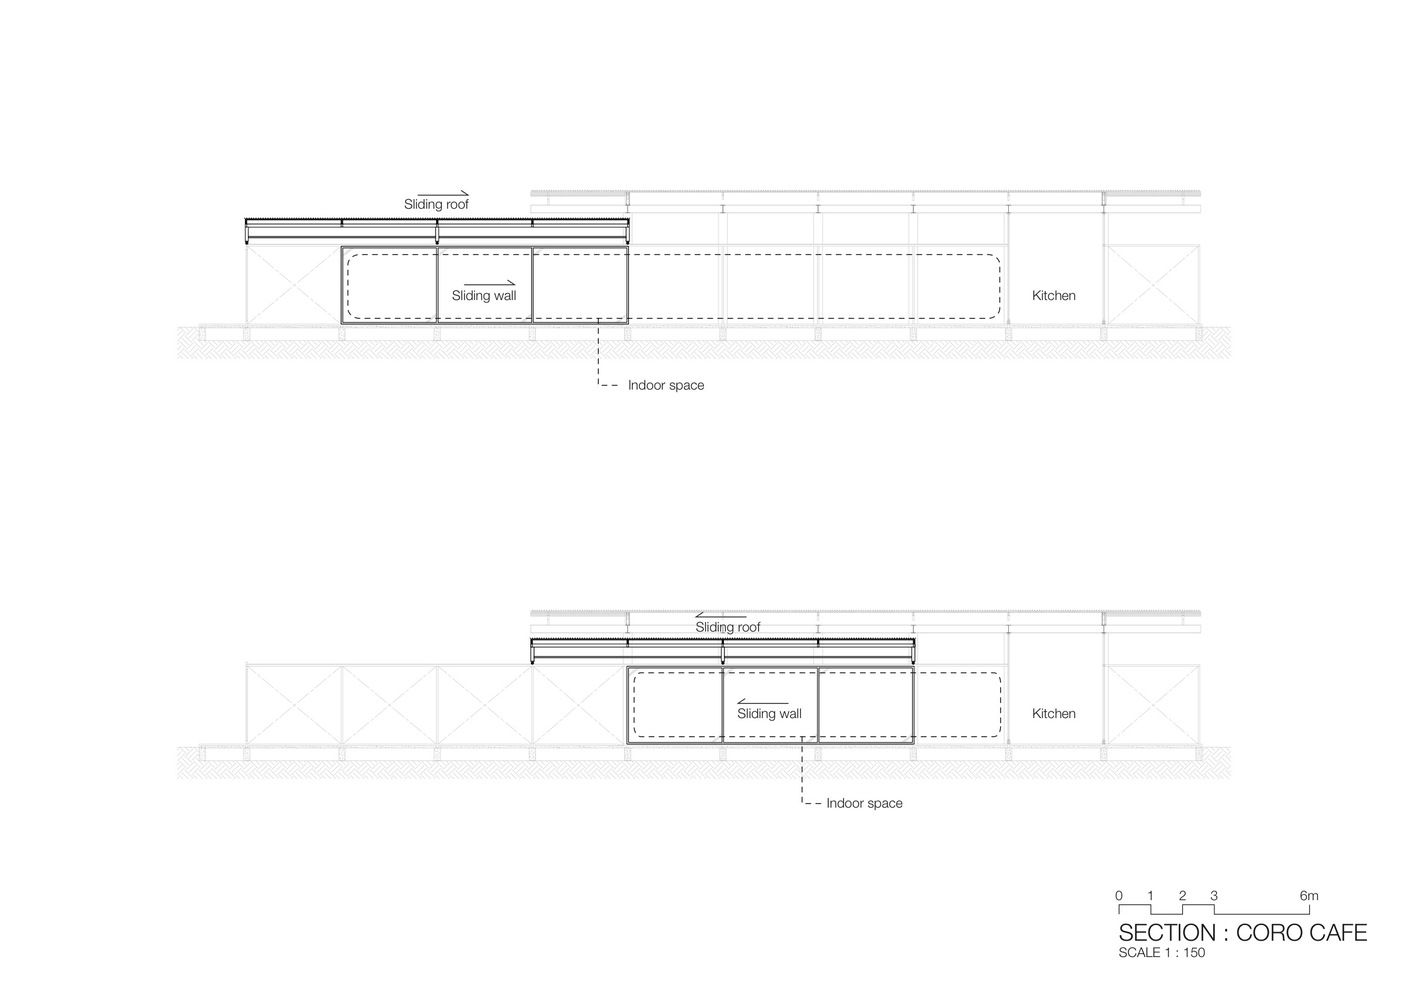 CORO Project - Phase 1,Section